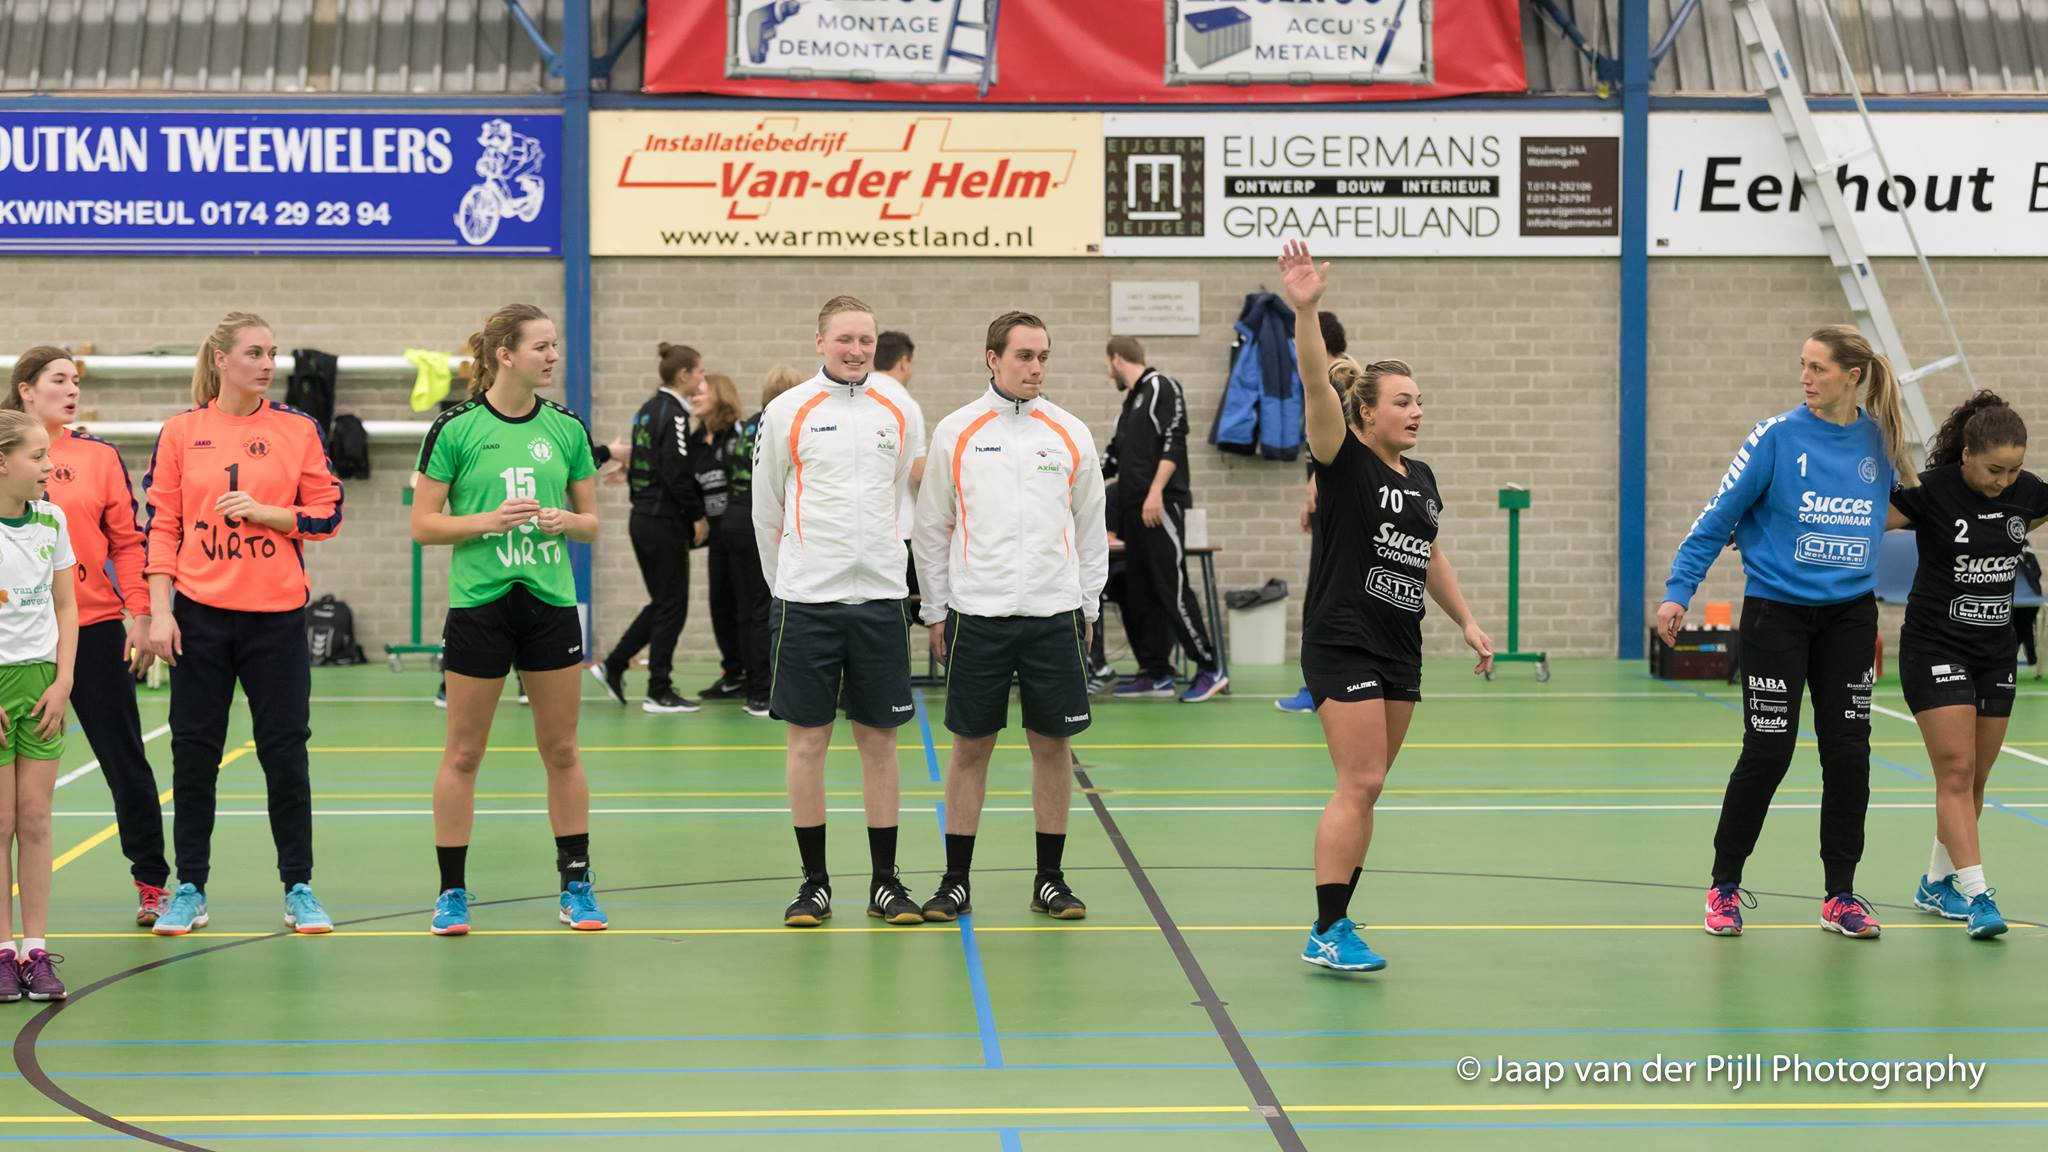 5-tips-for-effective-communication-with-a-communication-system-from-Handball-referee-Koen-Stobbe